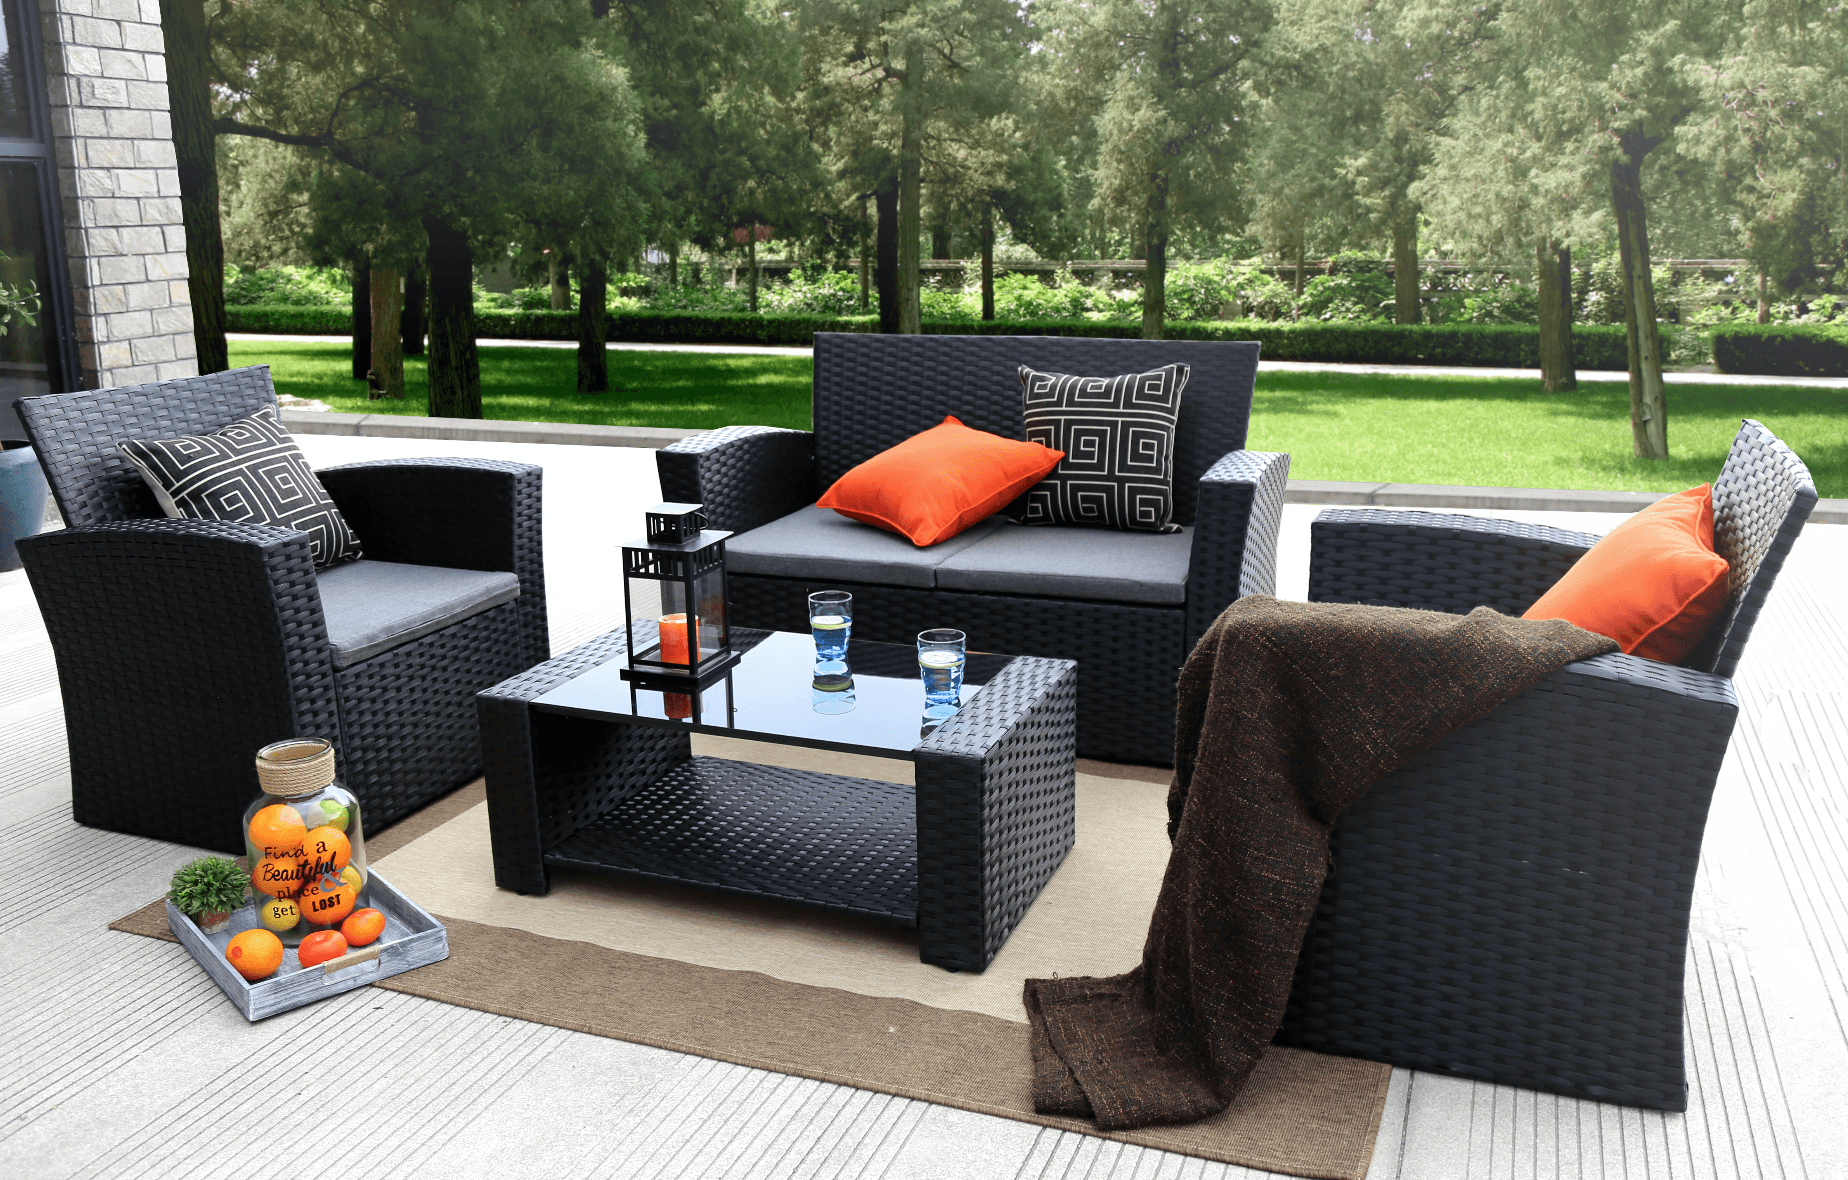 Baner Garden Complete Patio 4 Piece Rattan Wicker Conversation Set